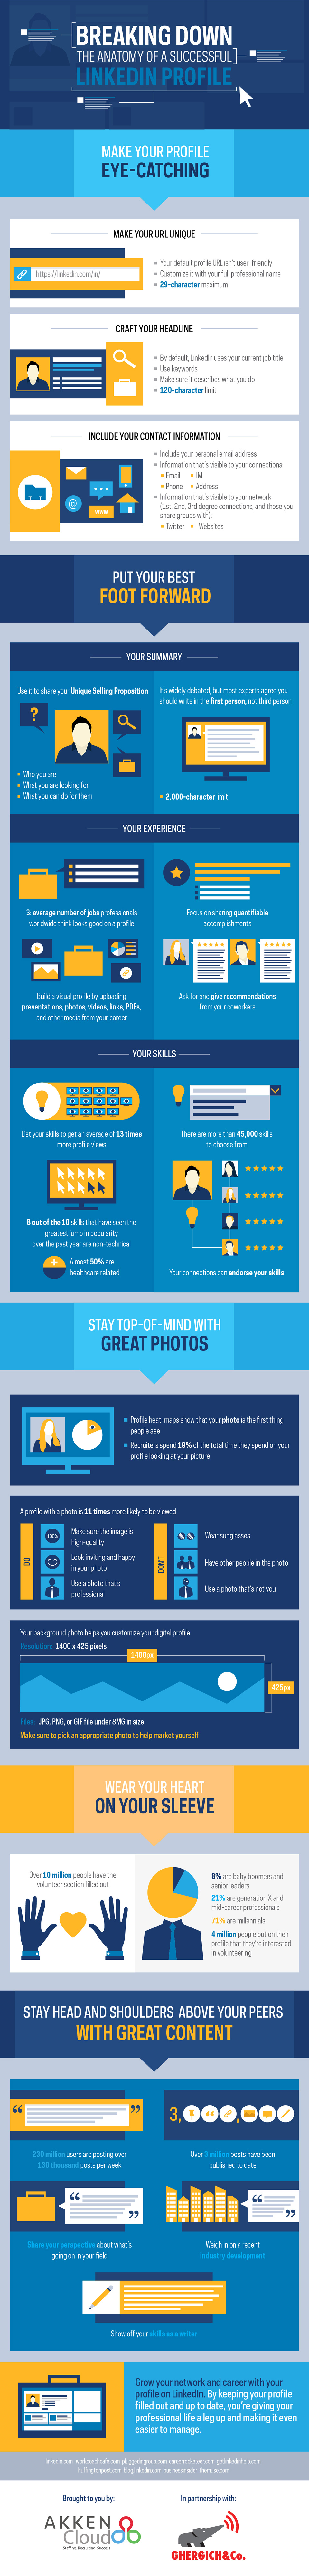 linkedIn-profile-infographic